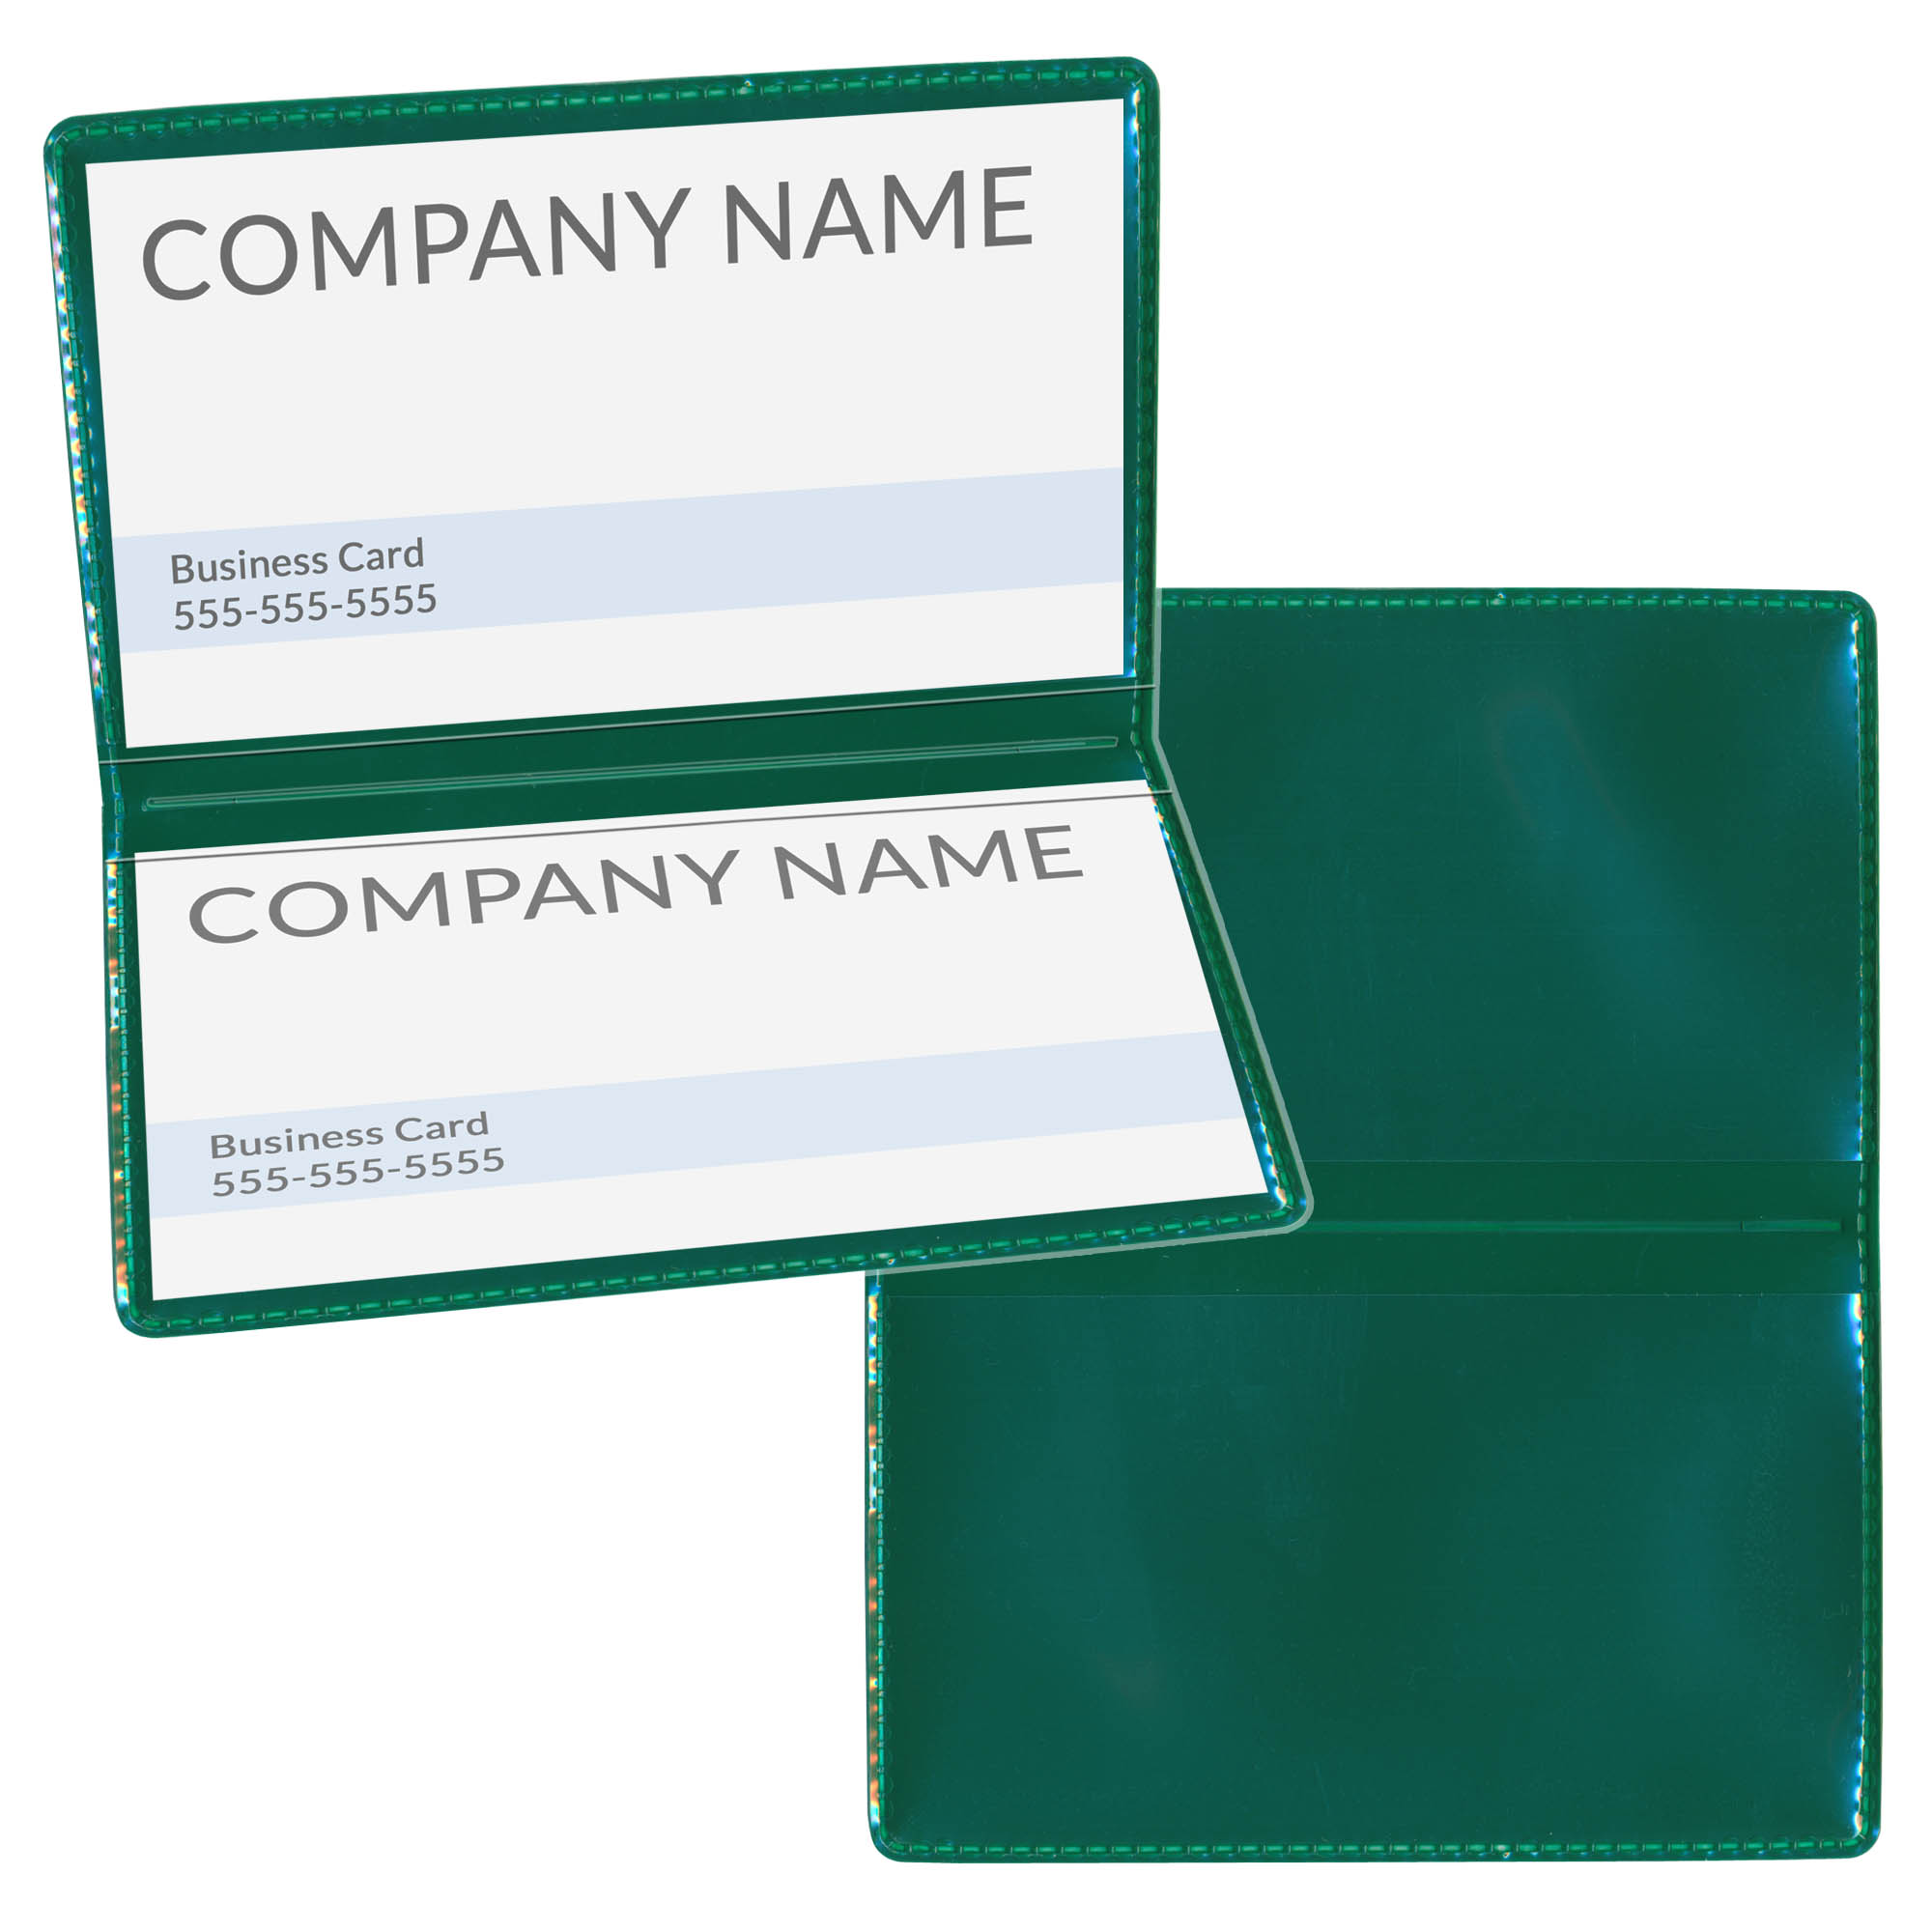 StoreSMART Black Folding Business Card Holders - 10 pack - Polypropylene Plastic (RPP2915-BK-10)